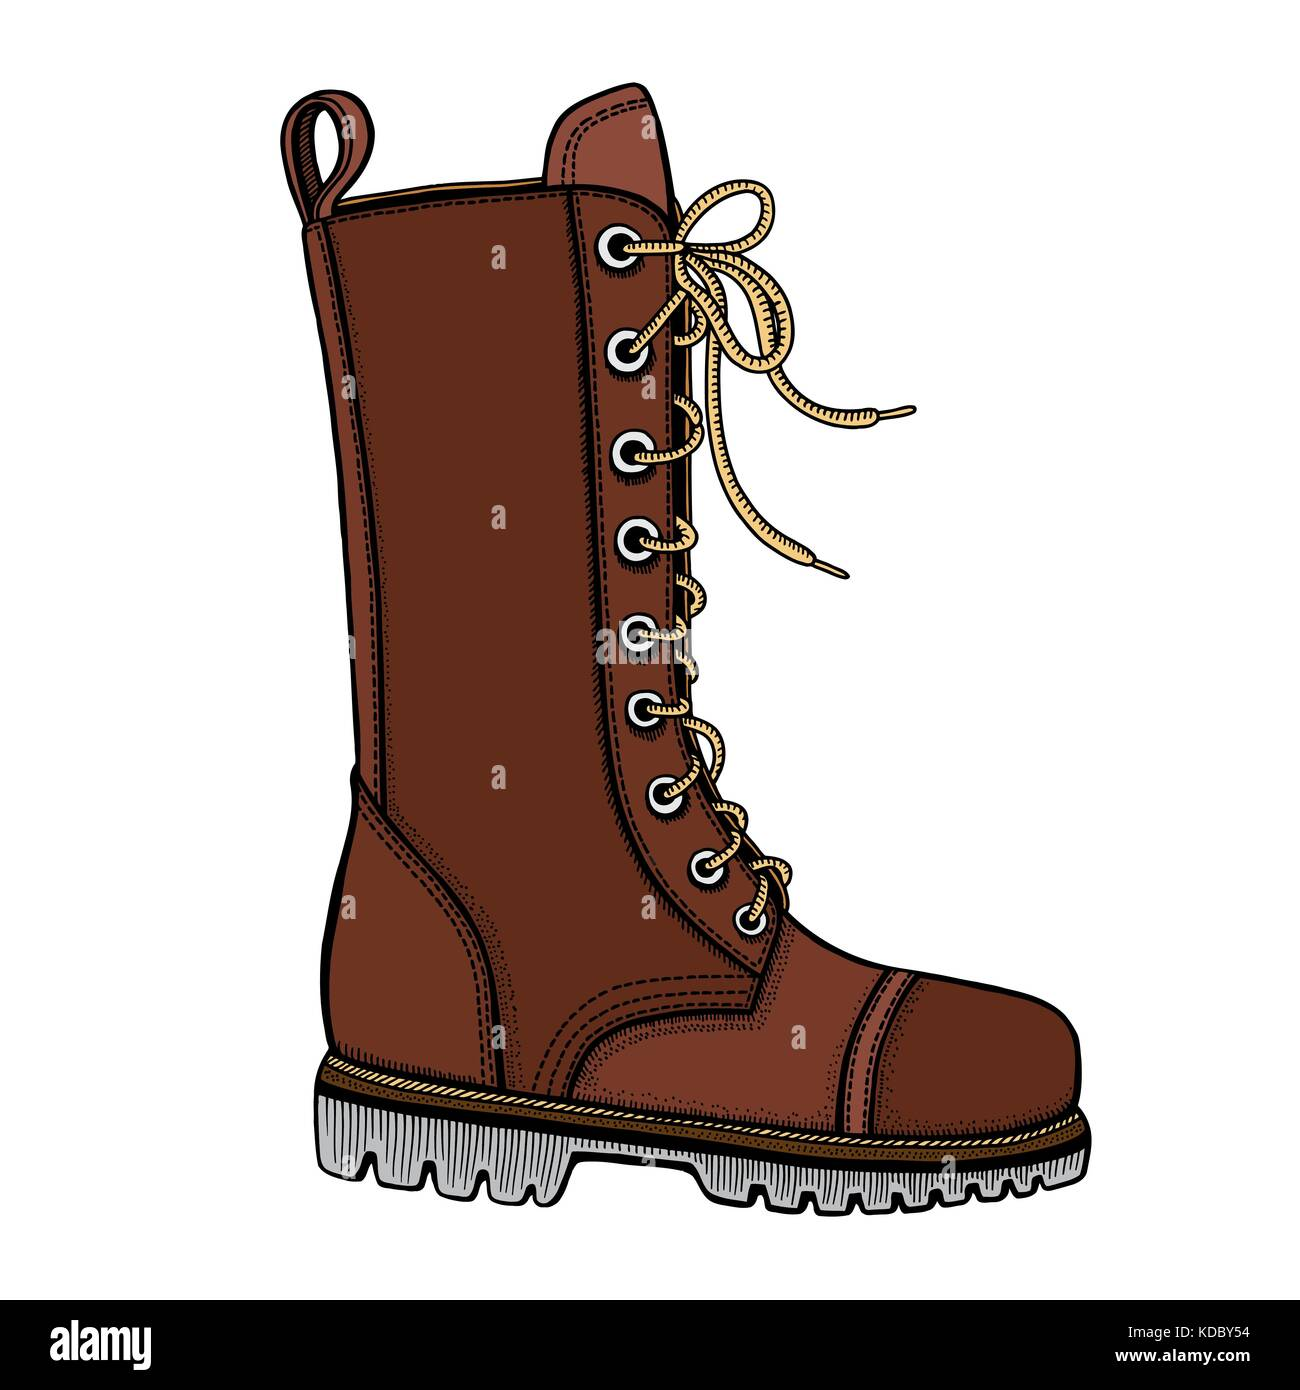 Vector Illustration of woman s brown leather boots with decorative belts and metallic buckles without shoelace on - Stock Vector